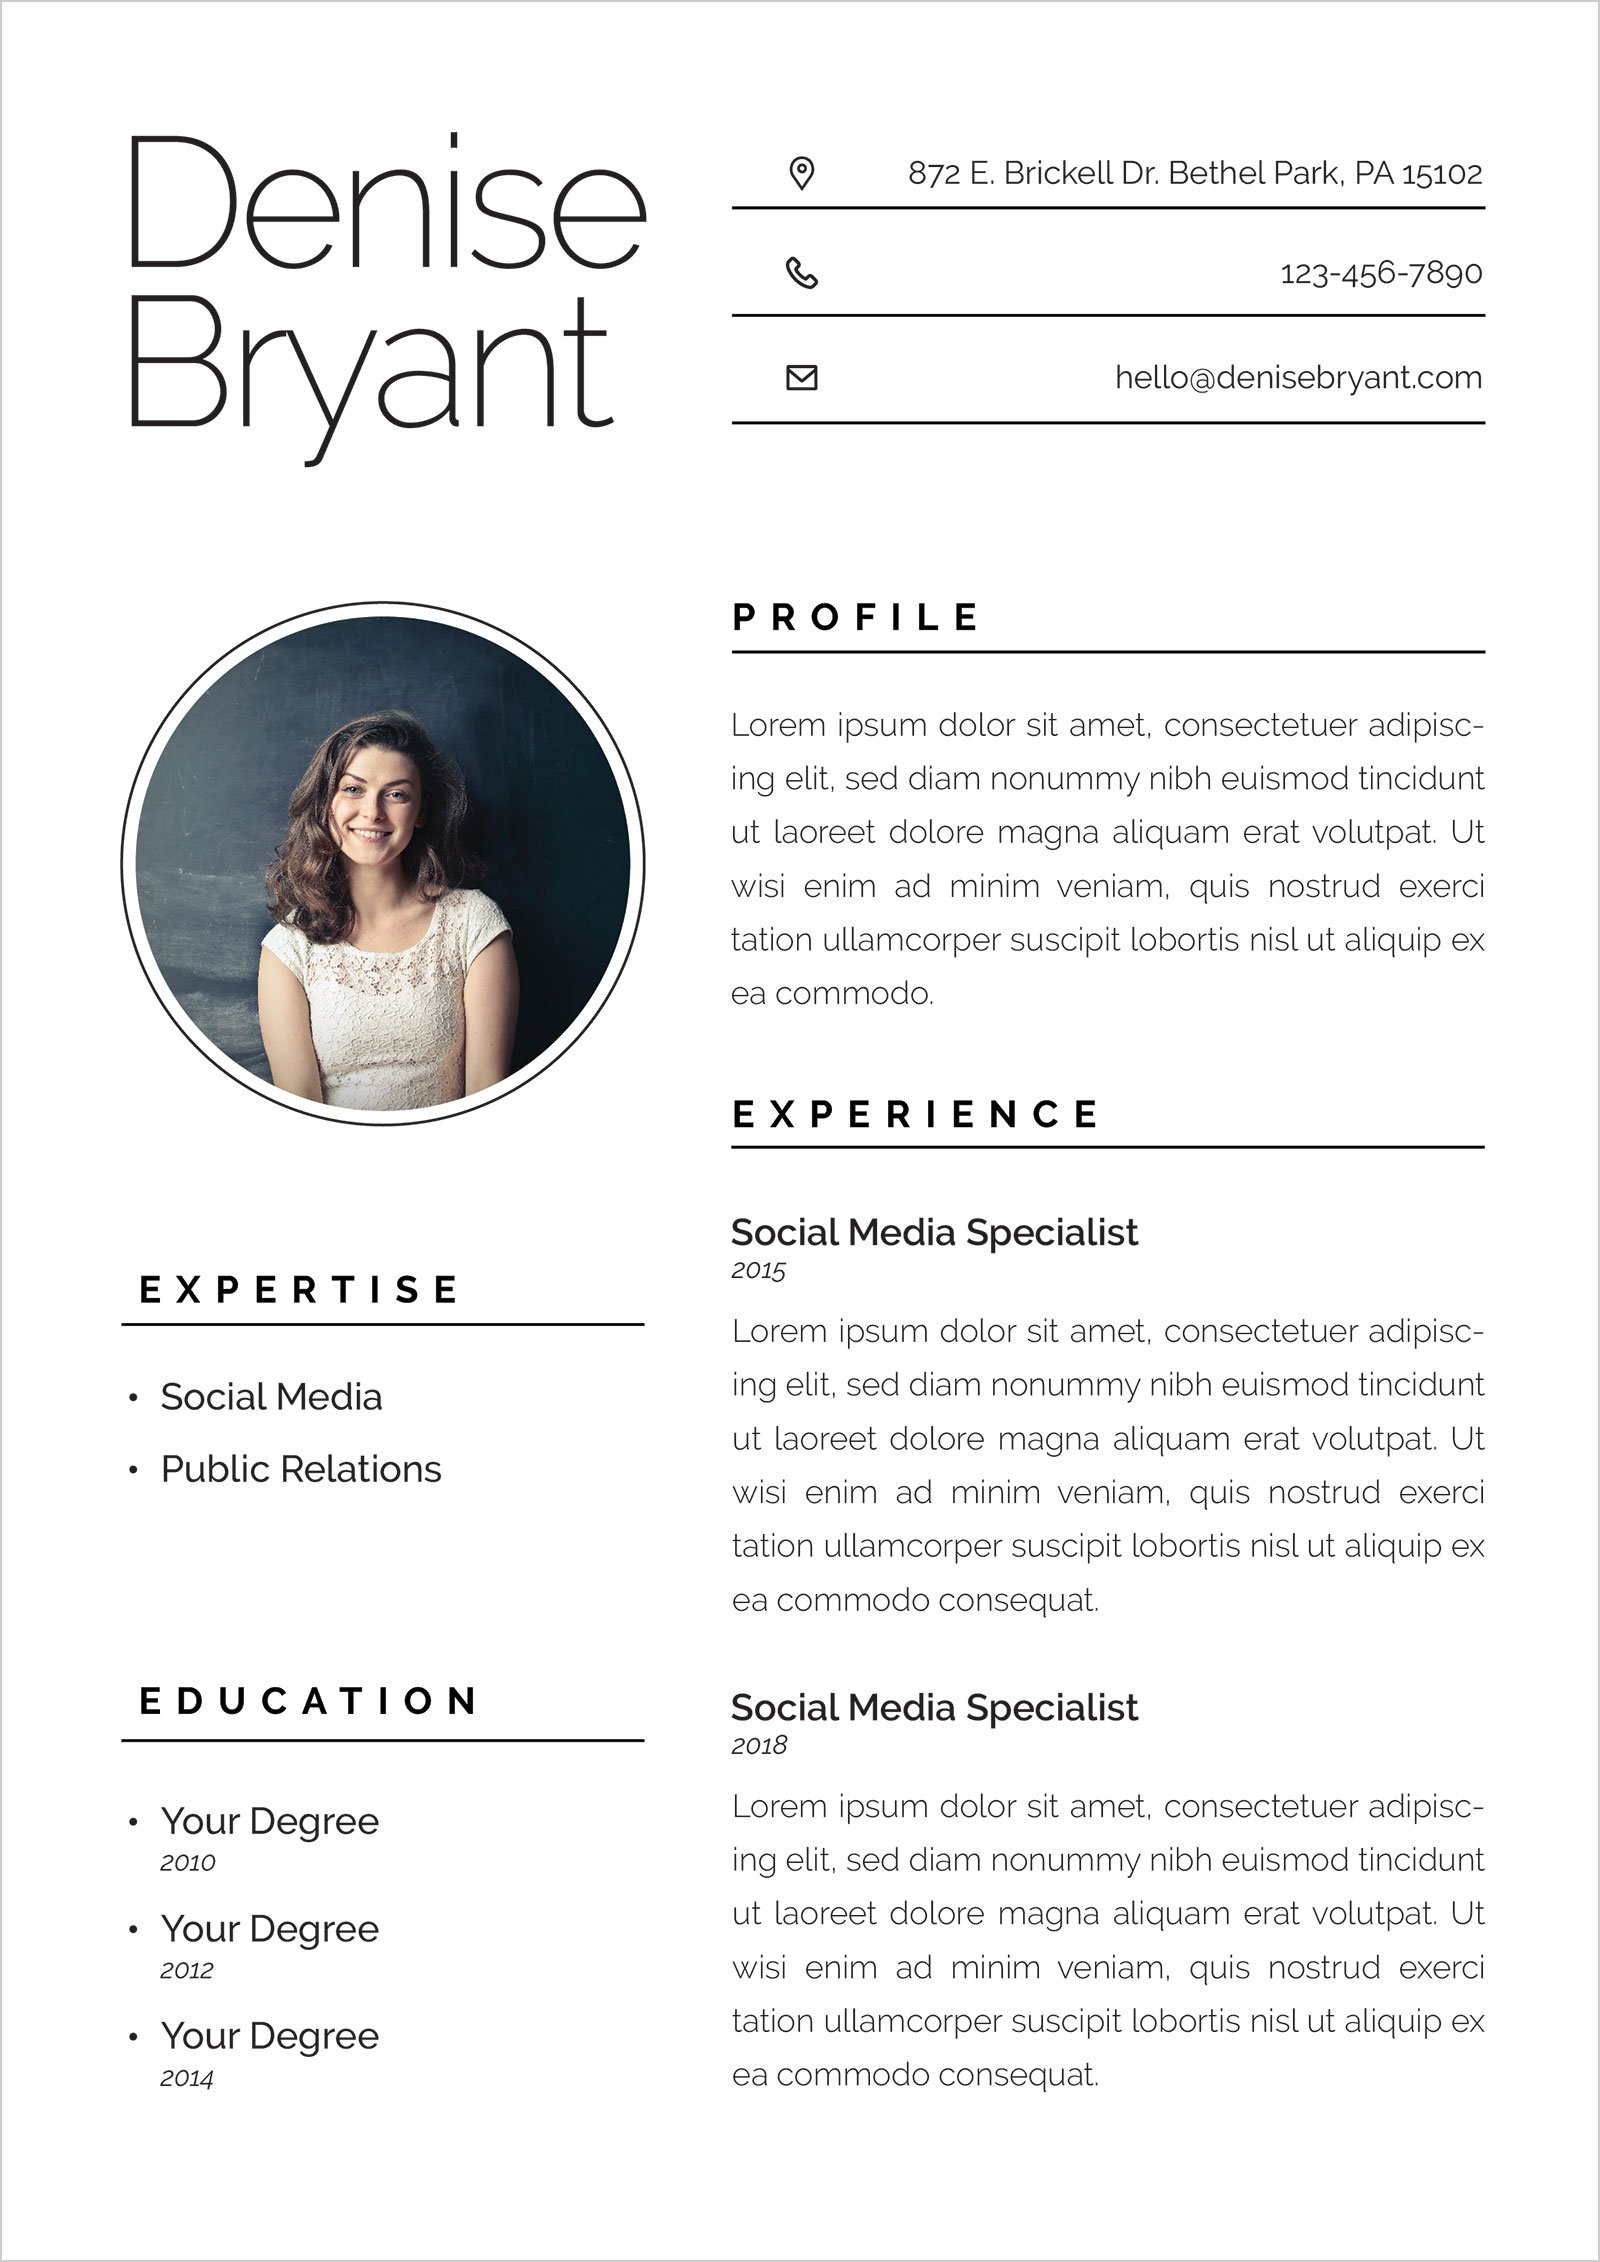 Free Ai Resume CV Format For Social Media Specialists  Public Relation Officers  Good Resume